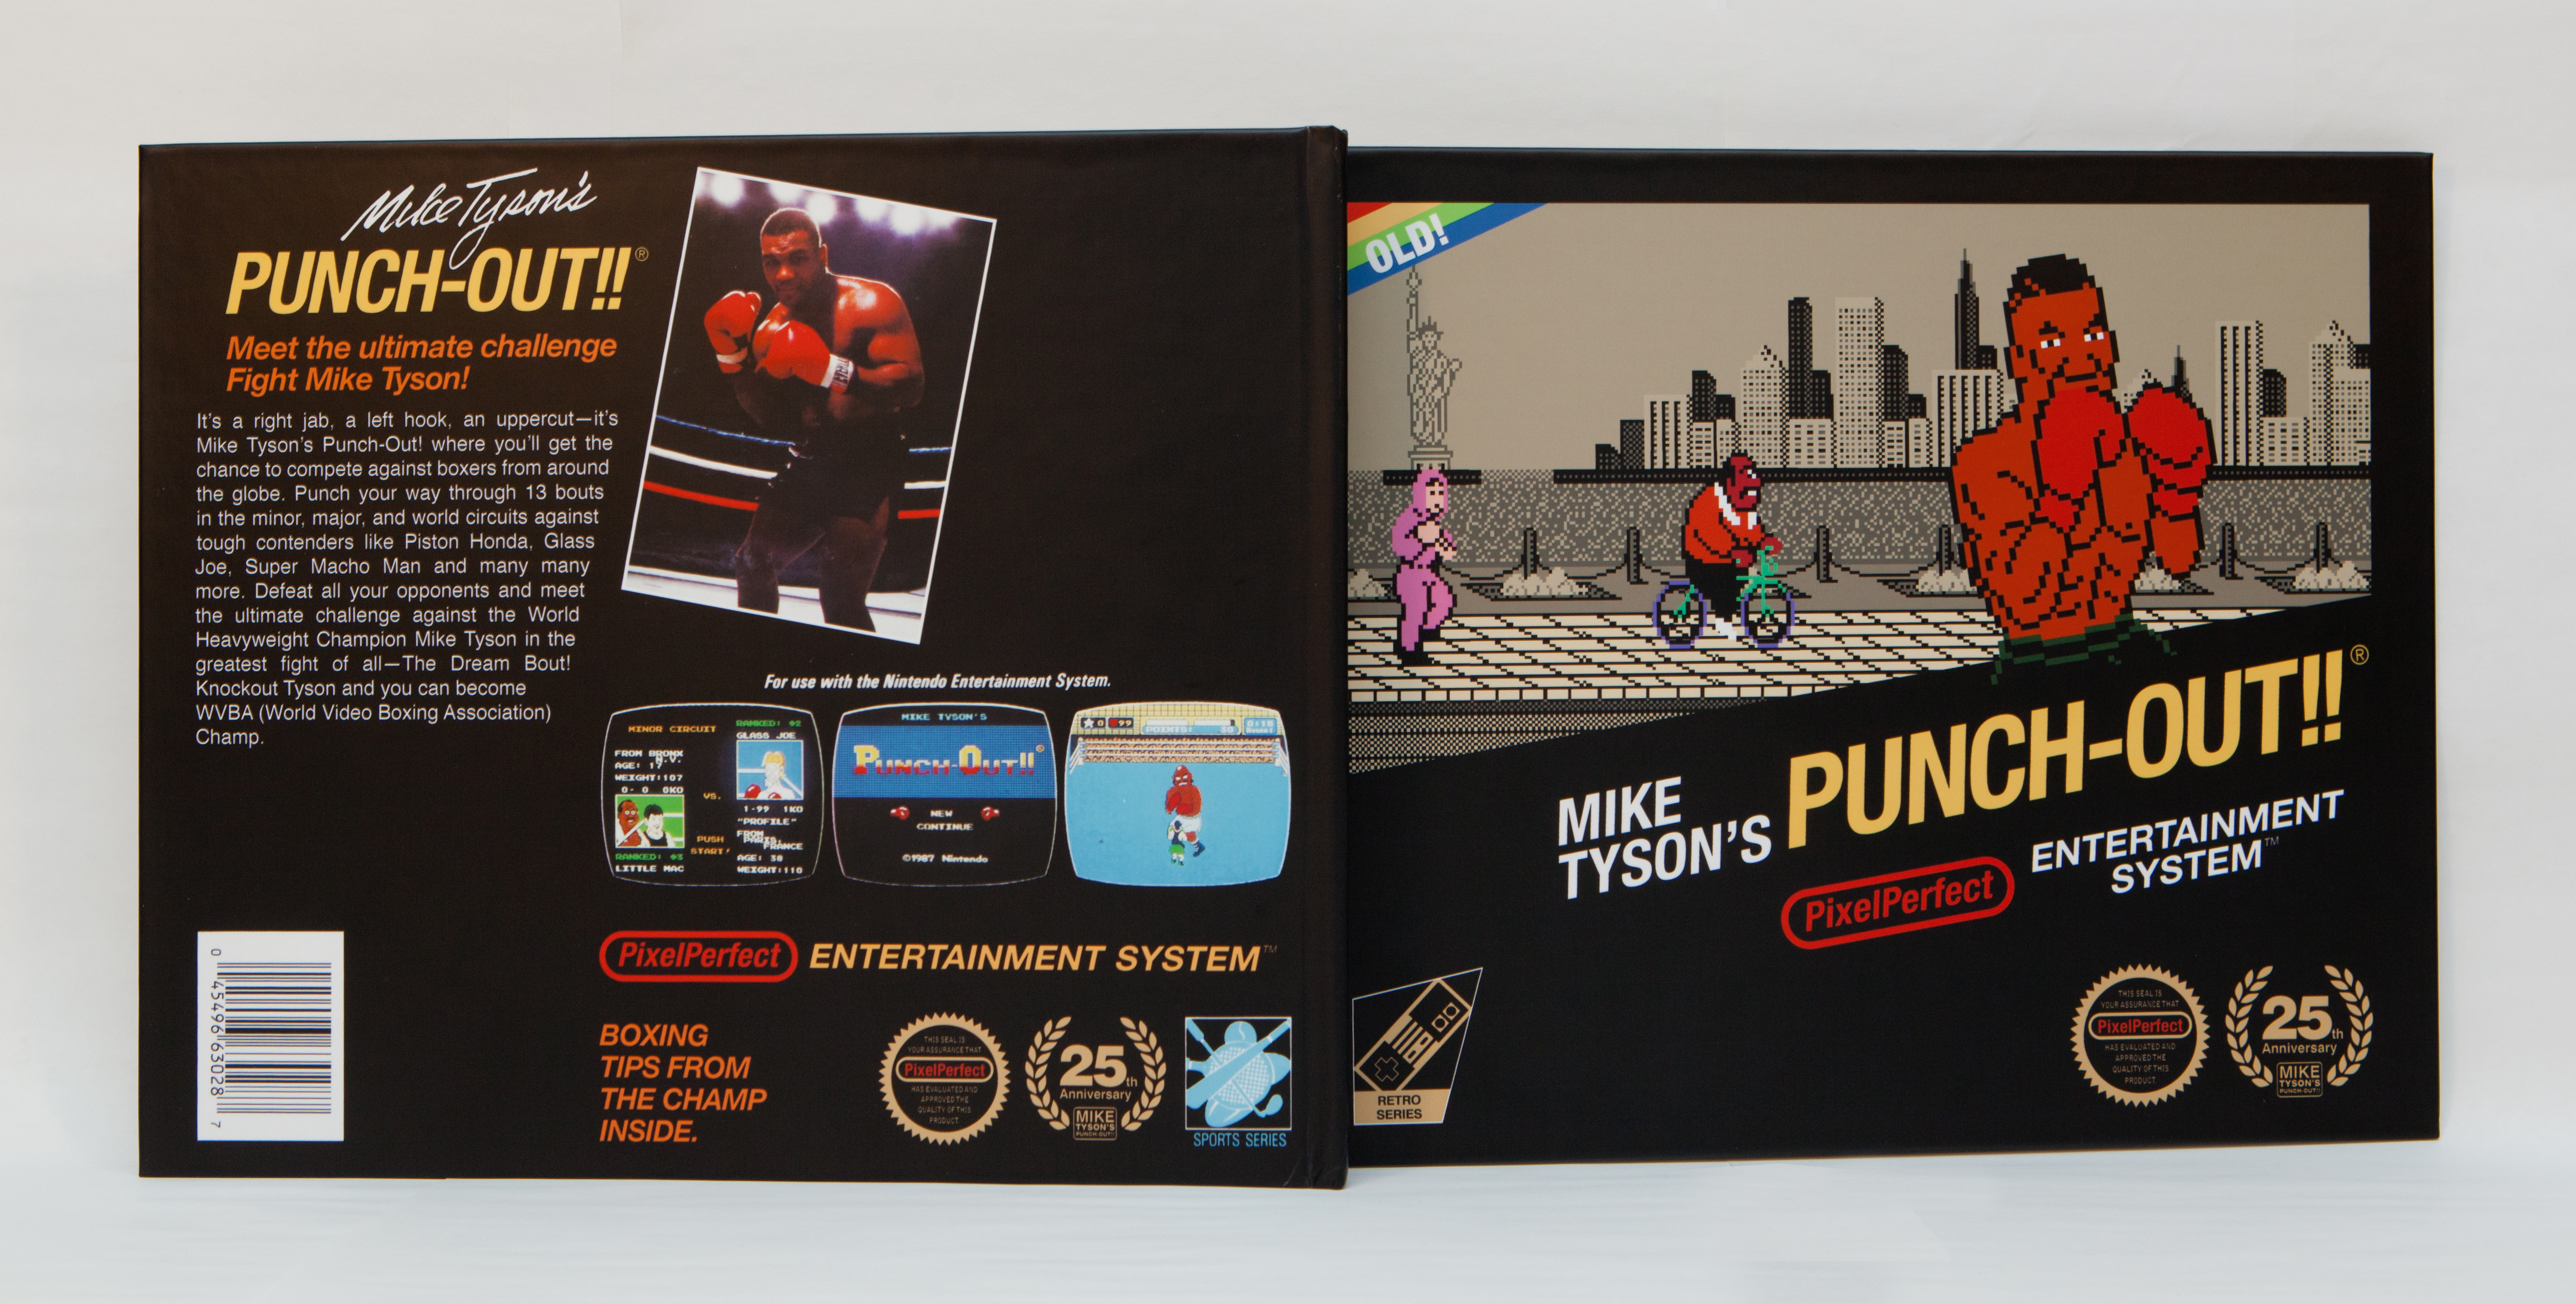 Kickstarter-funded Punch Ou